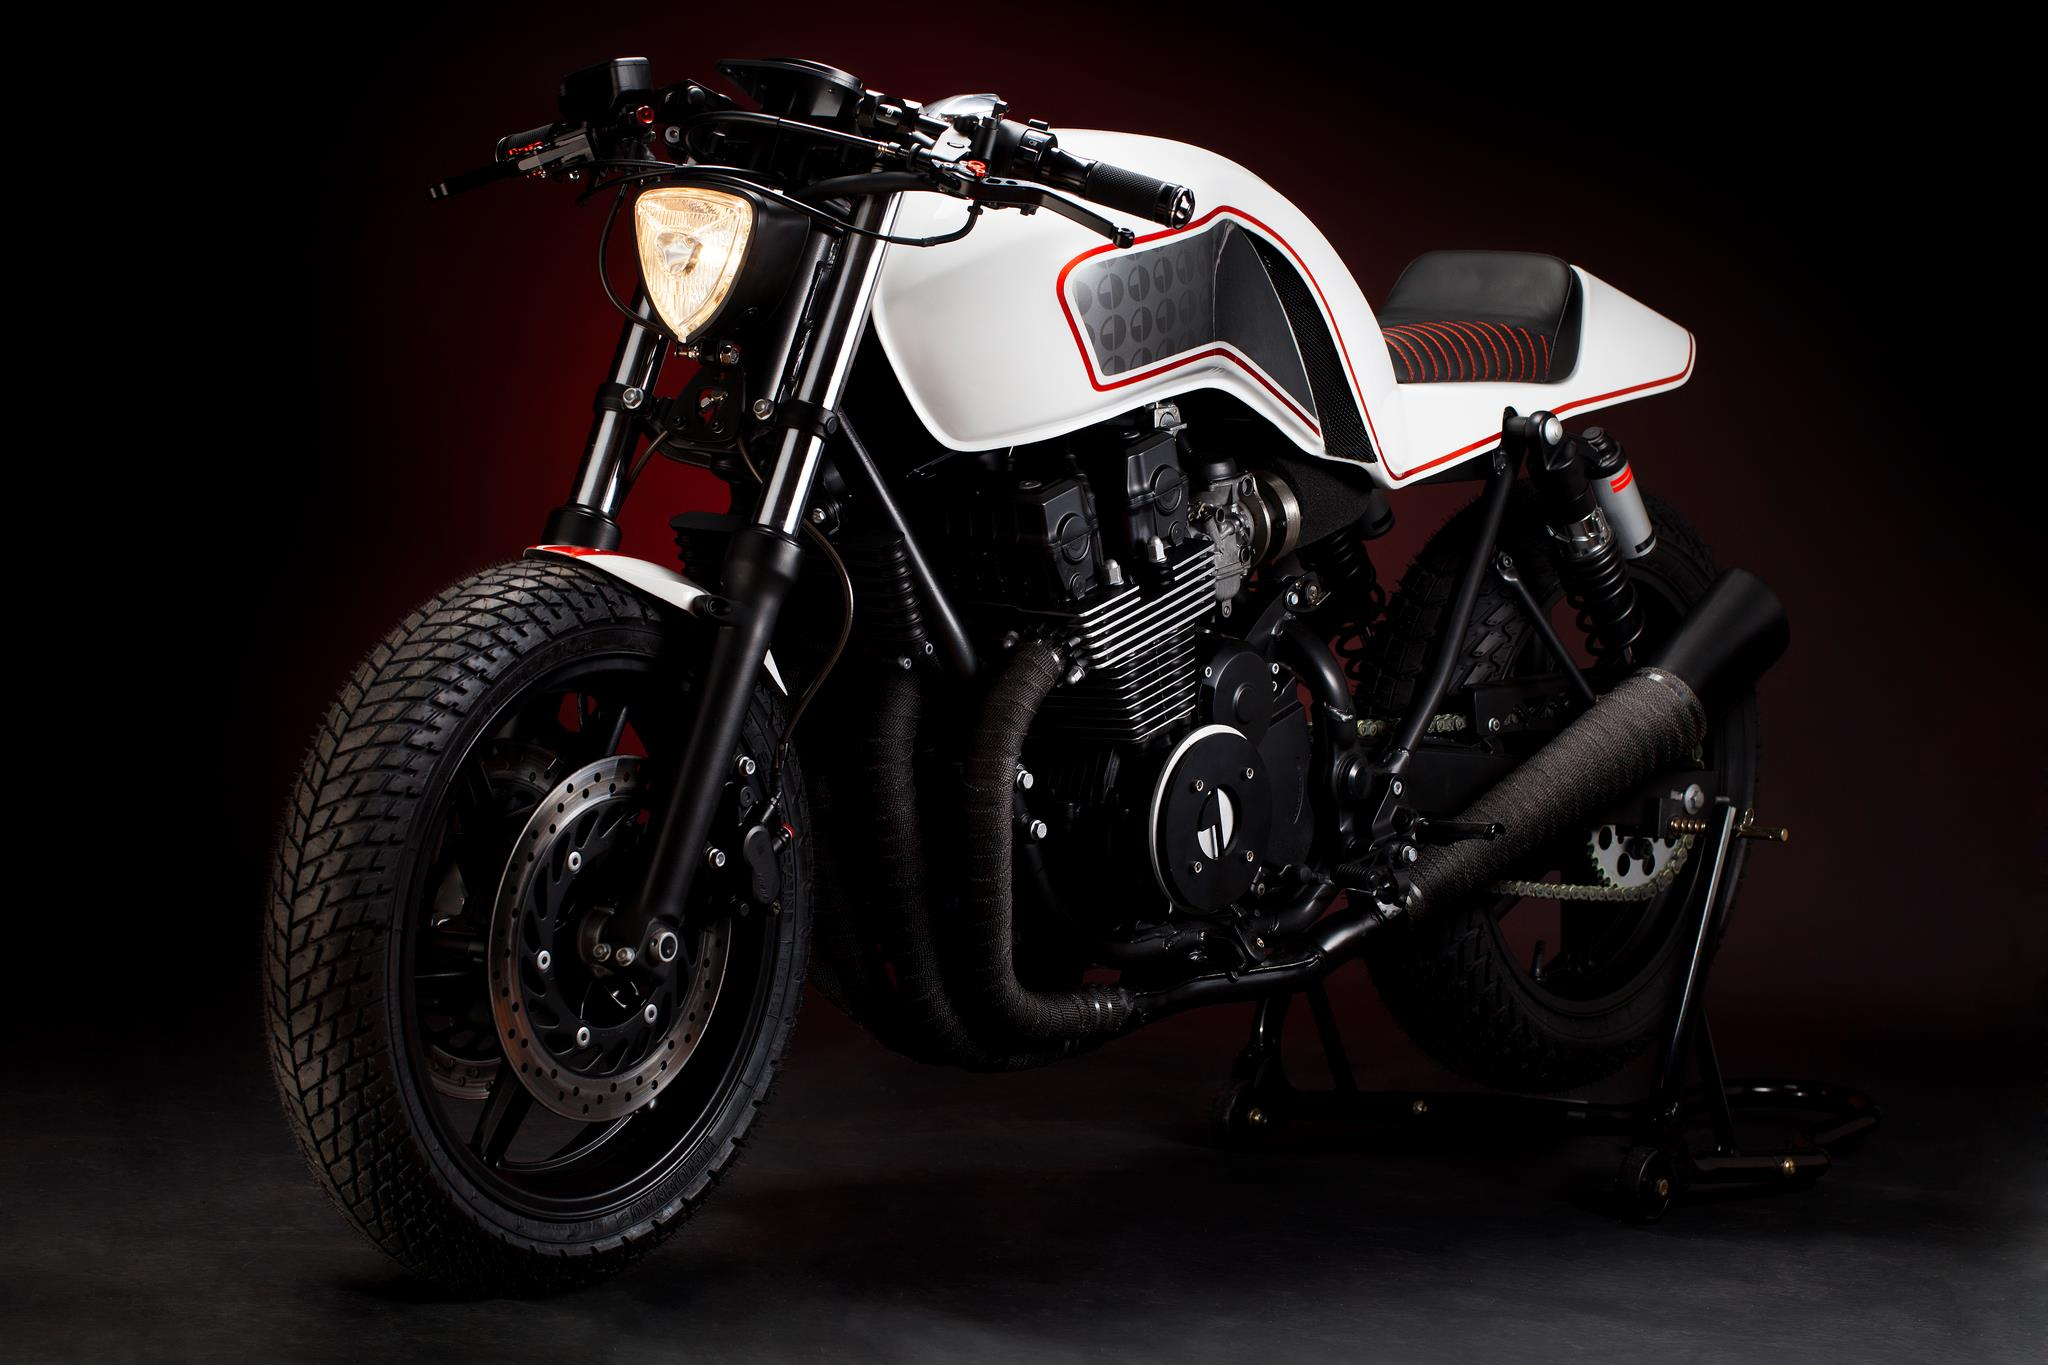 gravedigger-an-amazing-custom-honda-cb750-photo-gallery 5